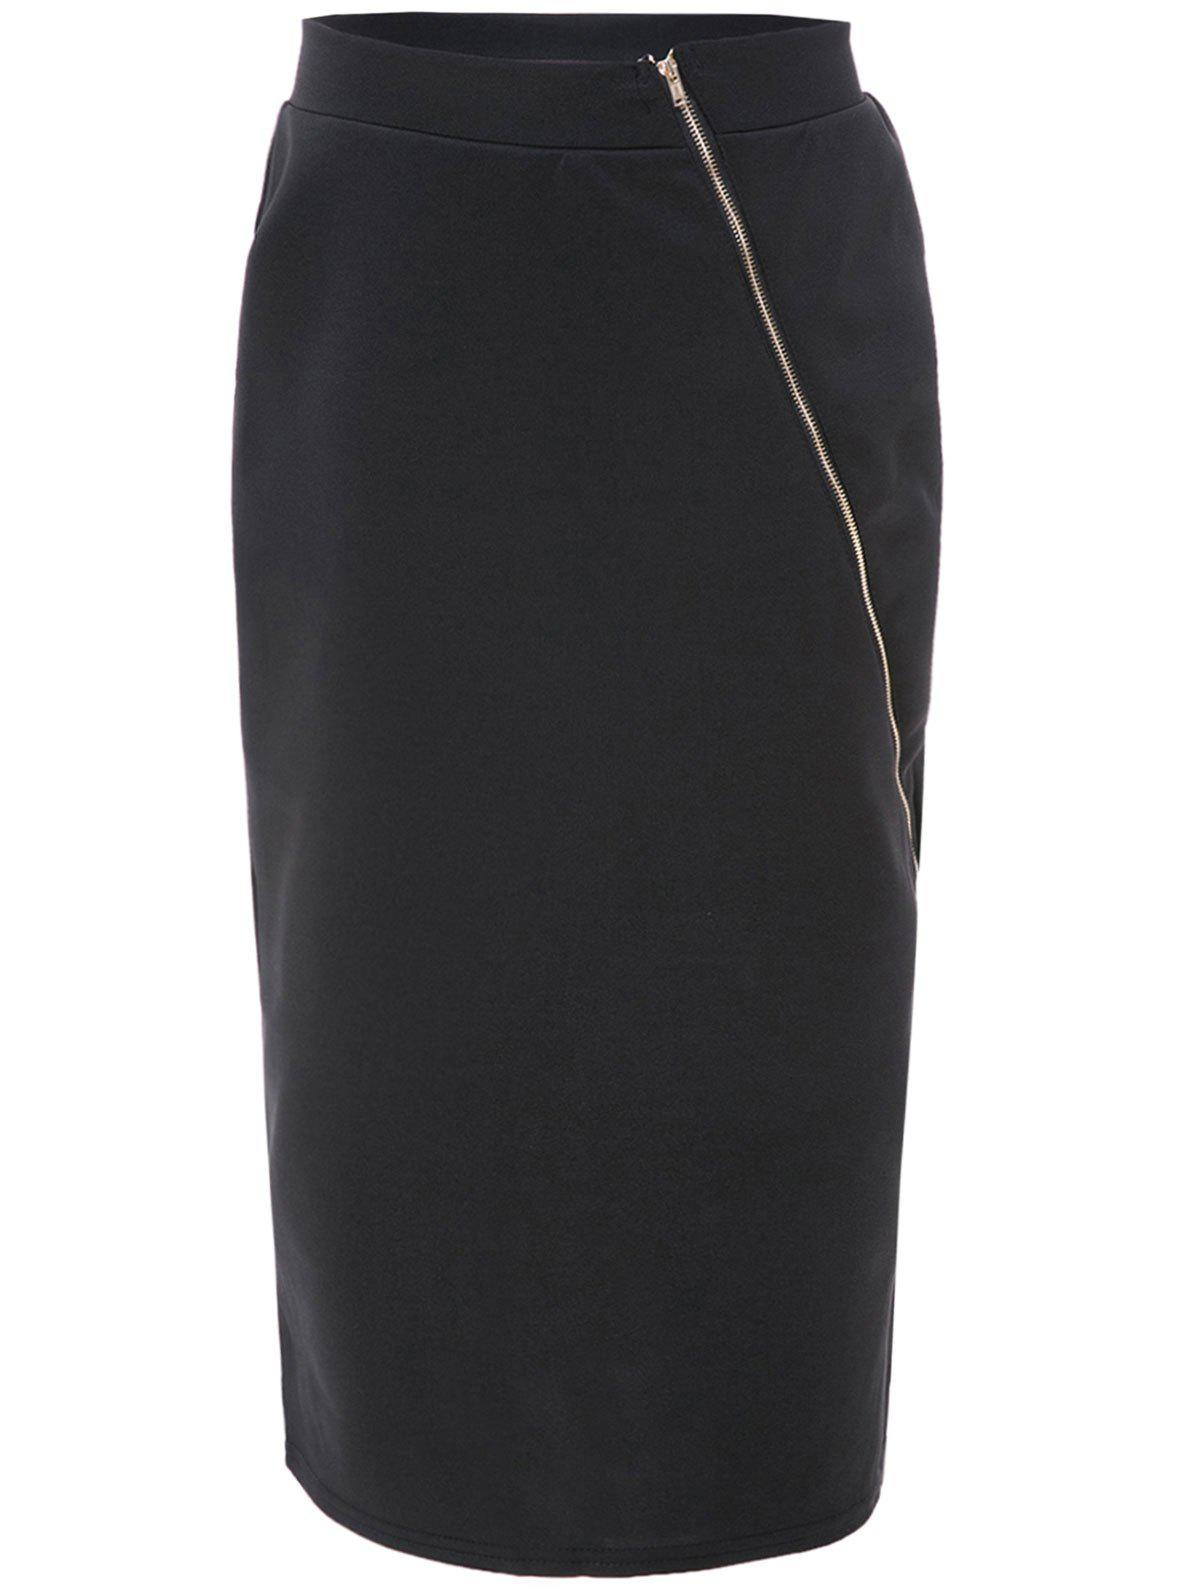 Trendy Zipper Design High Waist Skirt - BLACK ONE SIZE(FIT SIZE XS TO M)